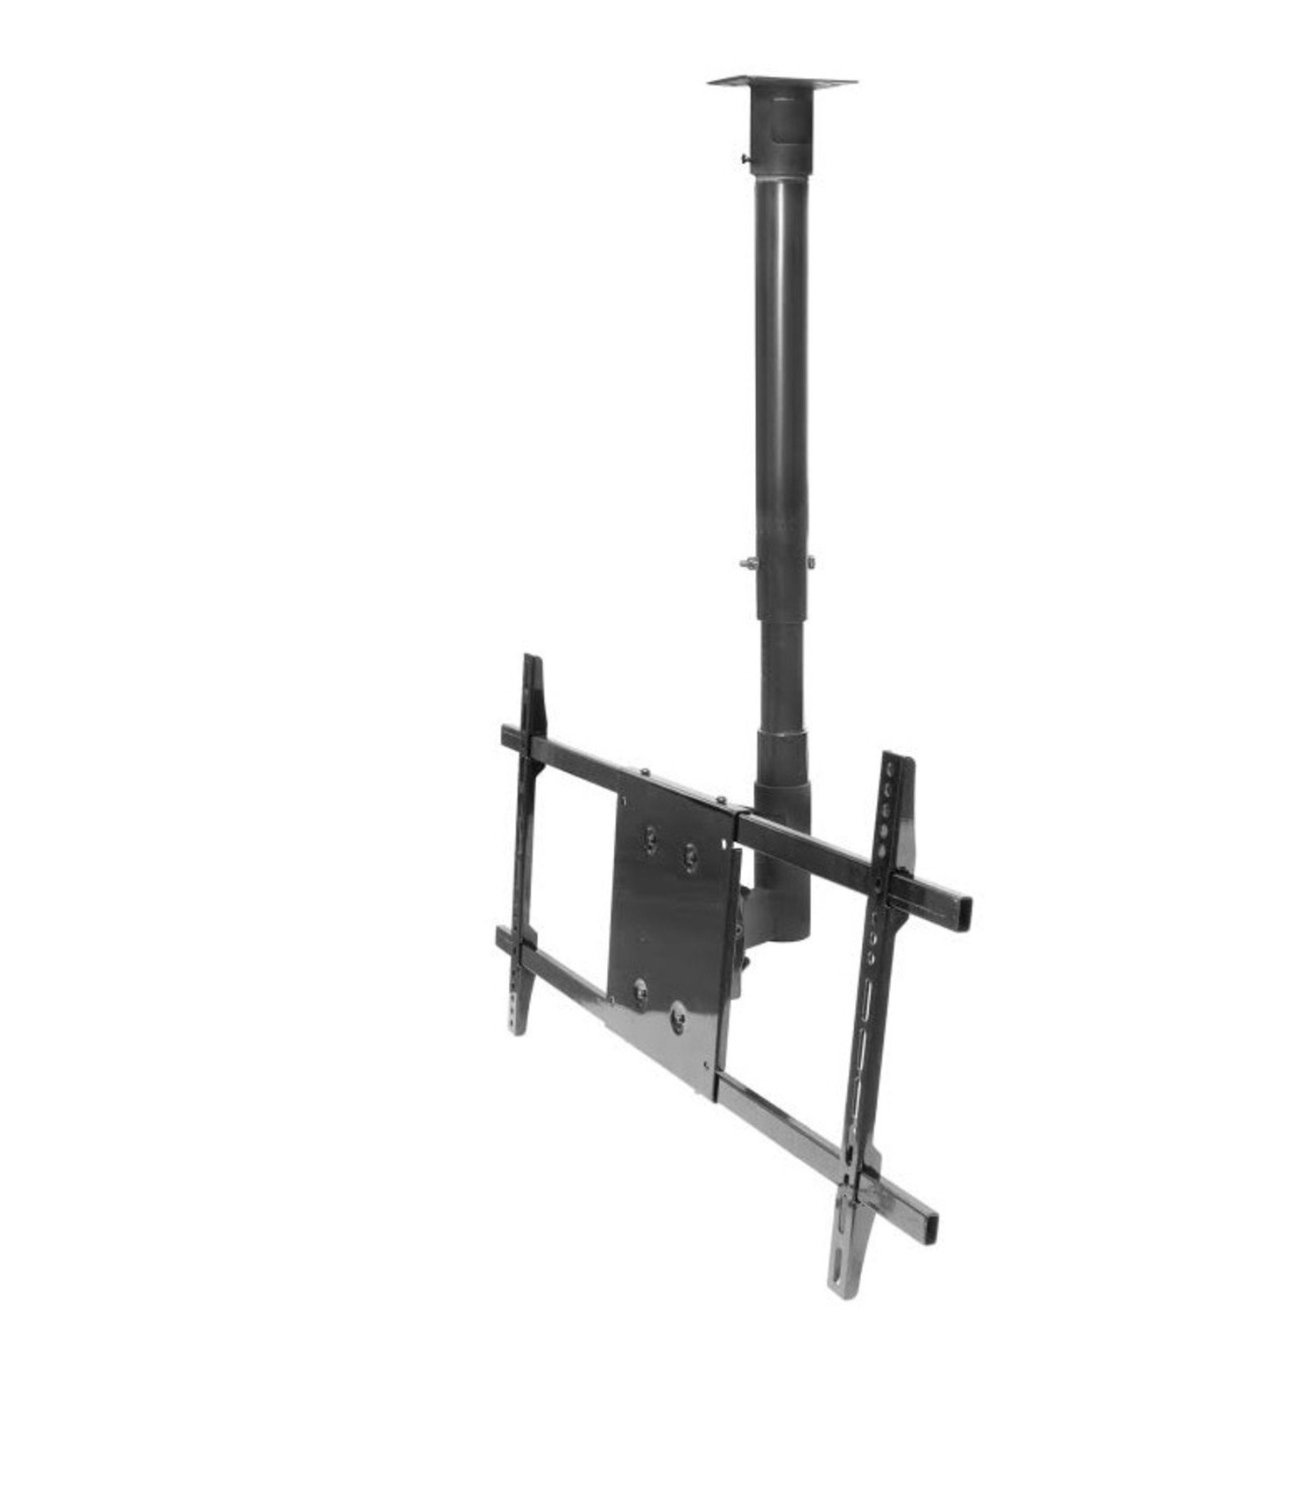 "Ceiling Mount Heavy Duty Professtional with 48"" - 72"" pipe extension for LED TV, LCD TV 39"" 40"" 42"" 46"" 48"" 50"" 52"" 54"" 55"" 60"" 64"" 65"" 70"""